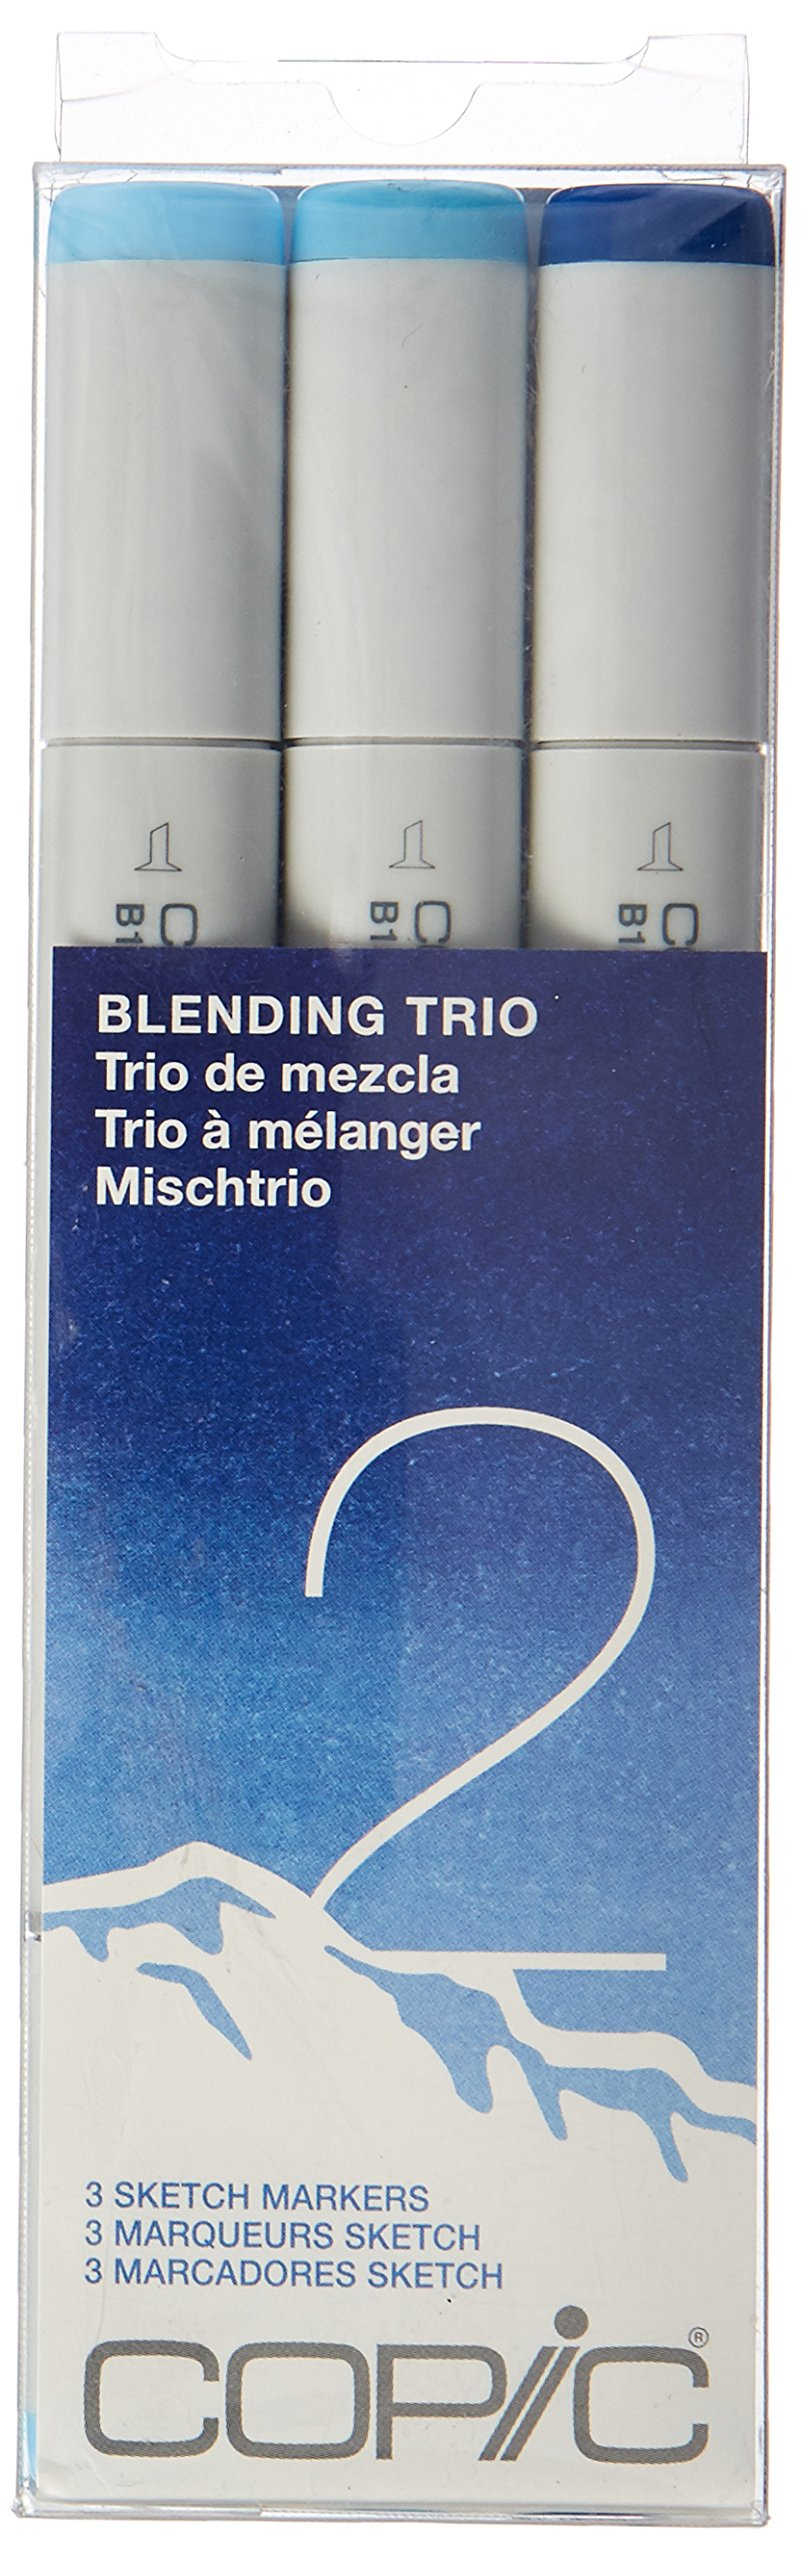 Copic Marker Sketch Blending Trio Markers, SBT 2, 3-Pack by Copic Marker